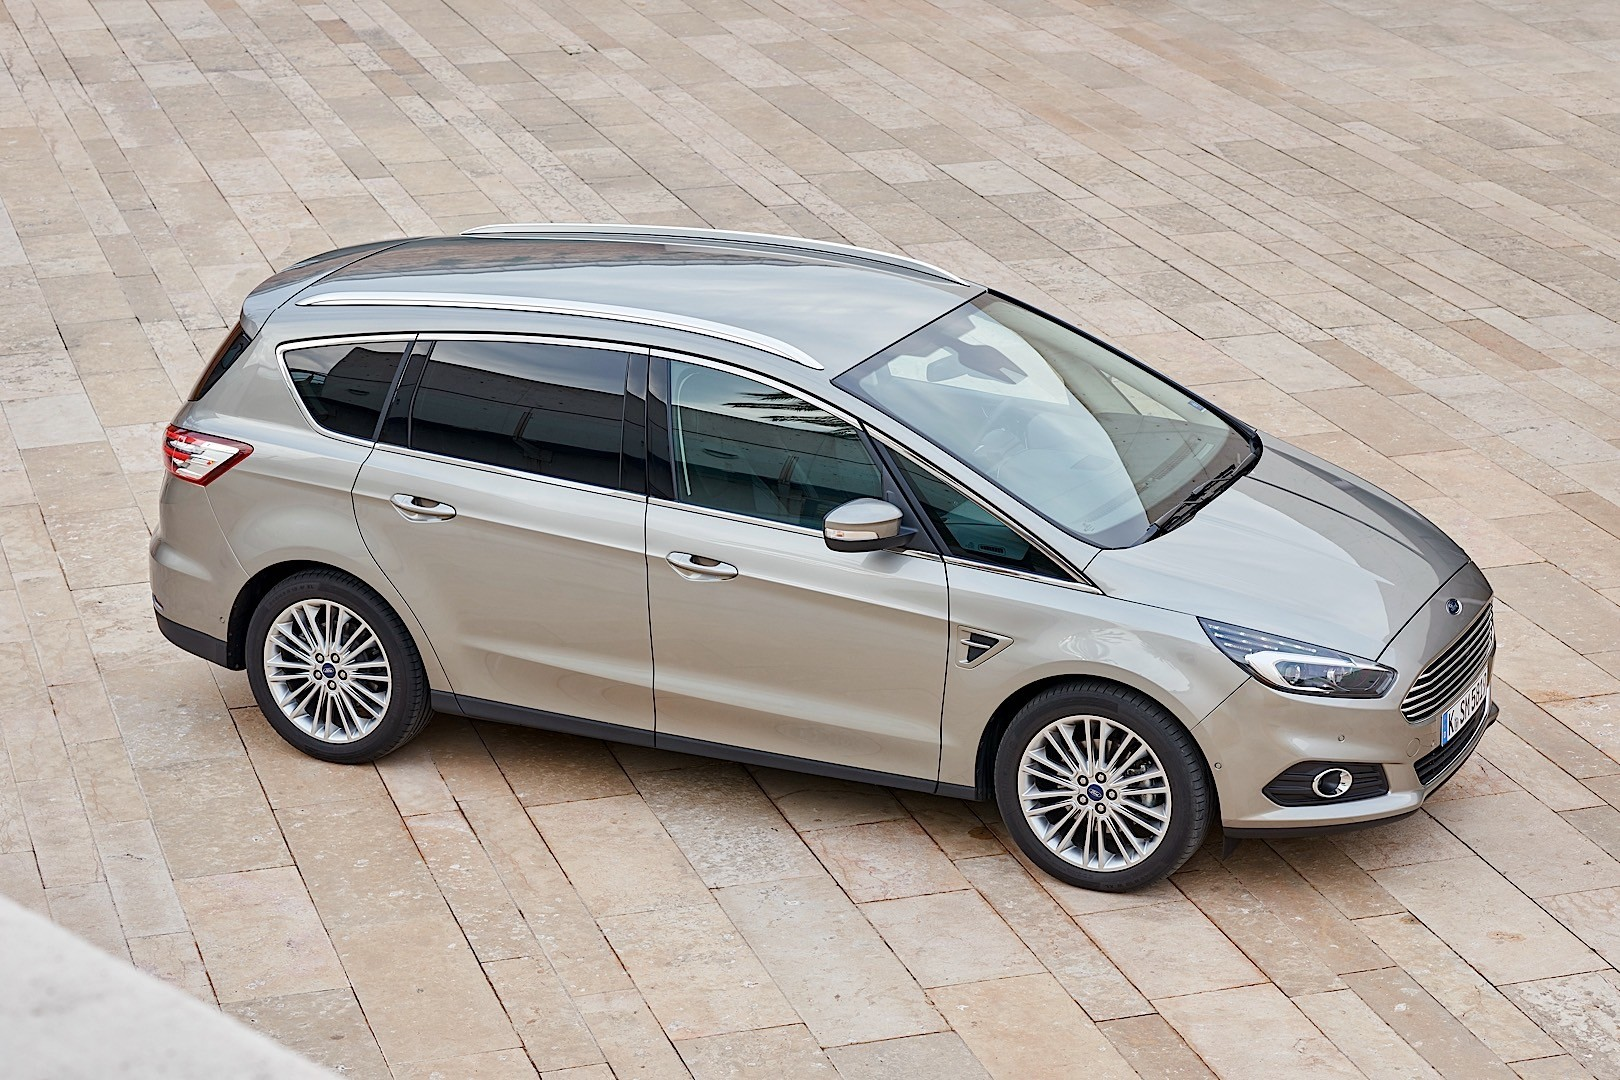 ford s max specs 2015 2016 2017 2018 autoevolution. Black Bedroom Furniture Sets. Home Design Ideas